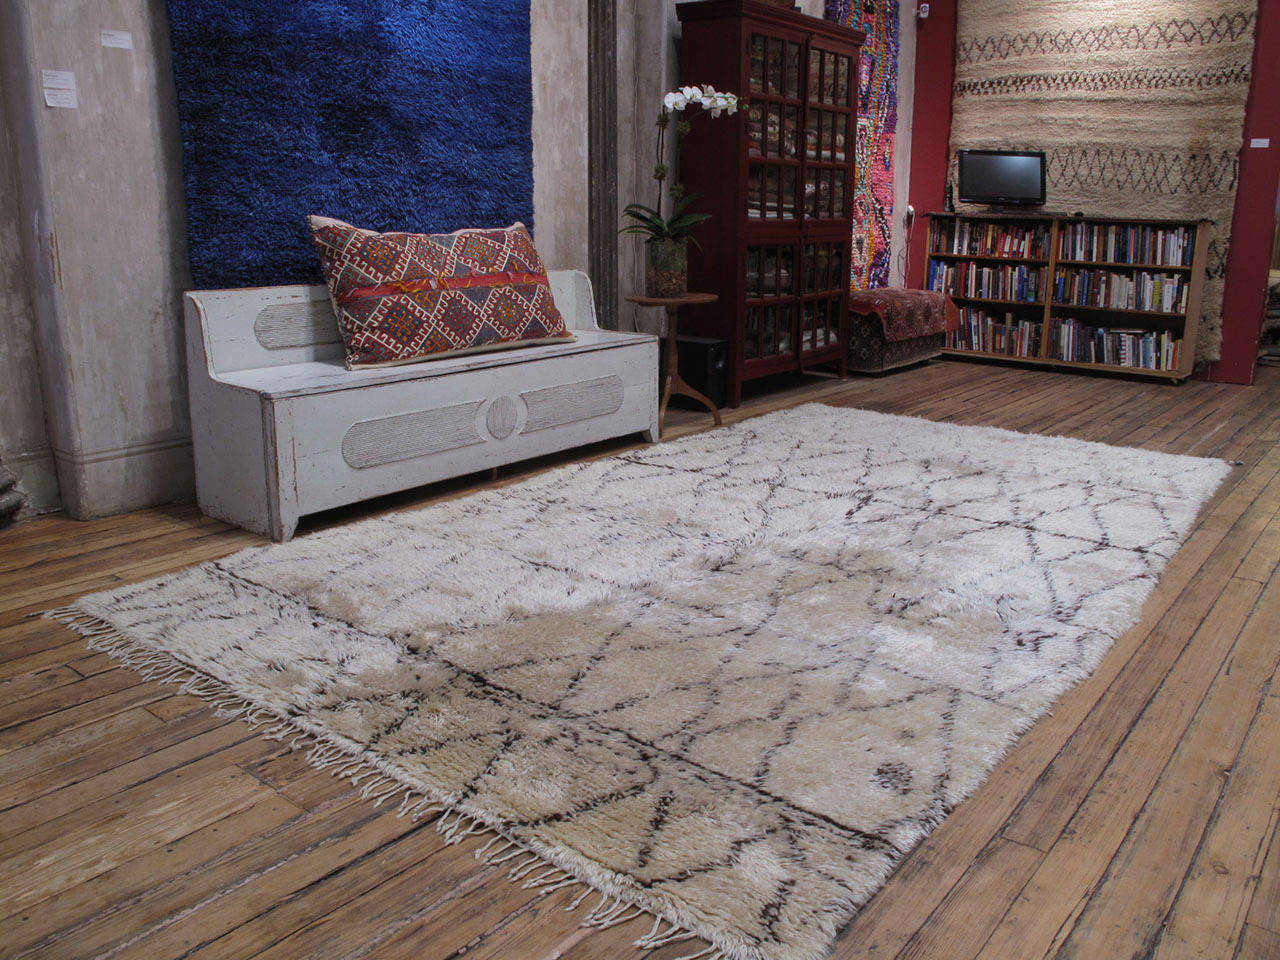 A superb old Moroccan Berber carpet of rare, large proportions, by the Beni Ouarain tribes. The classical diamond grid design is executed with great dynamism, featuring many interruptions and whimsical details. The weave is dense, the wool quality